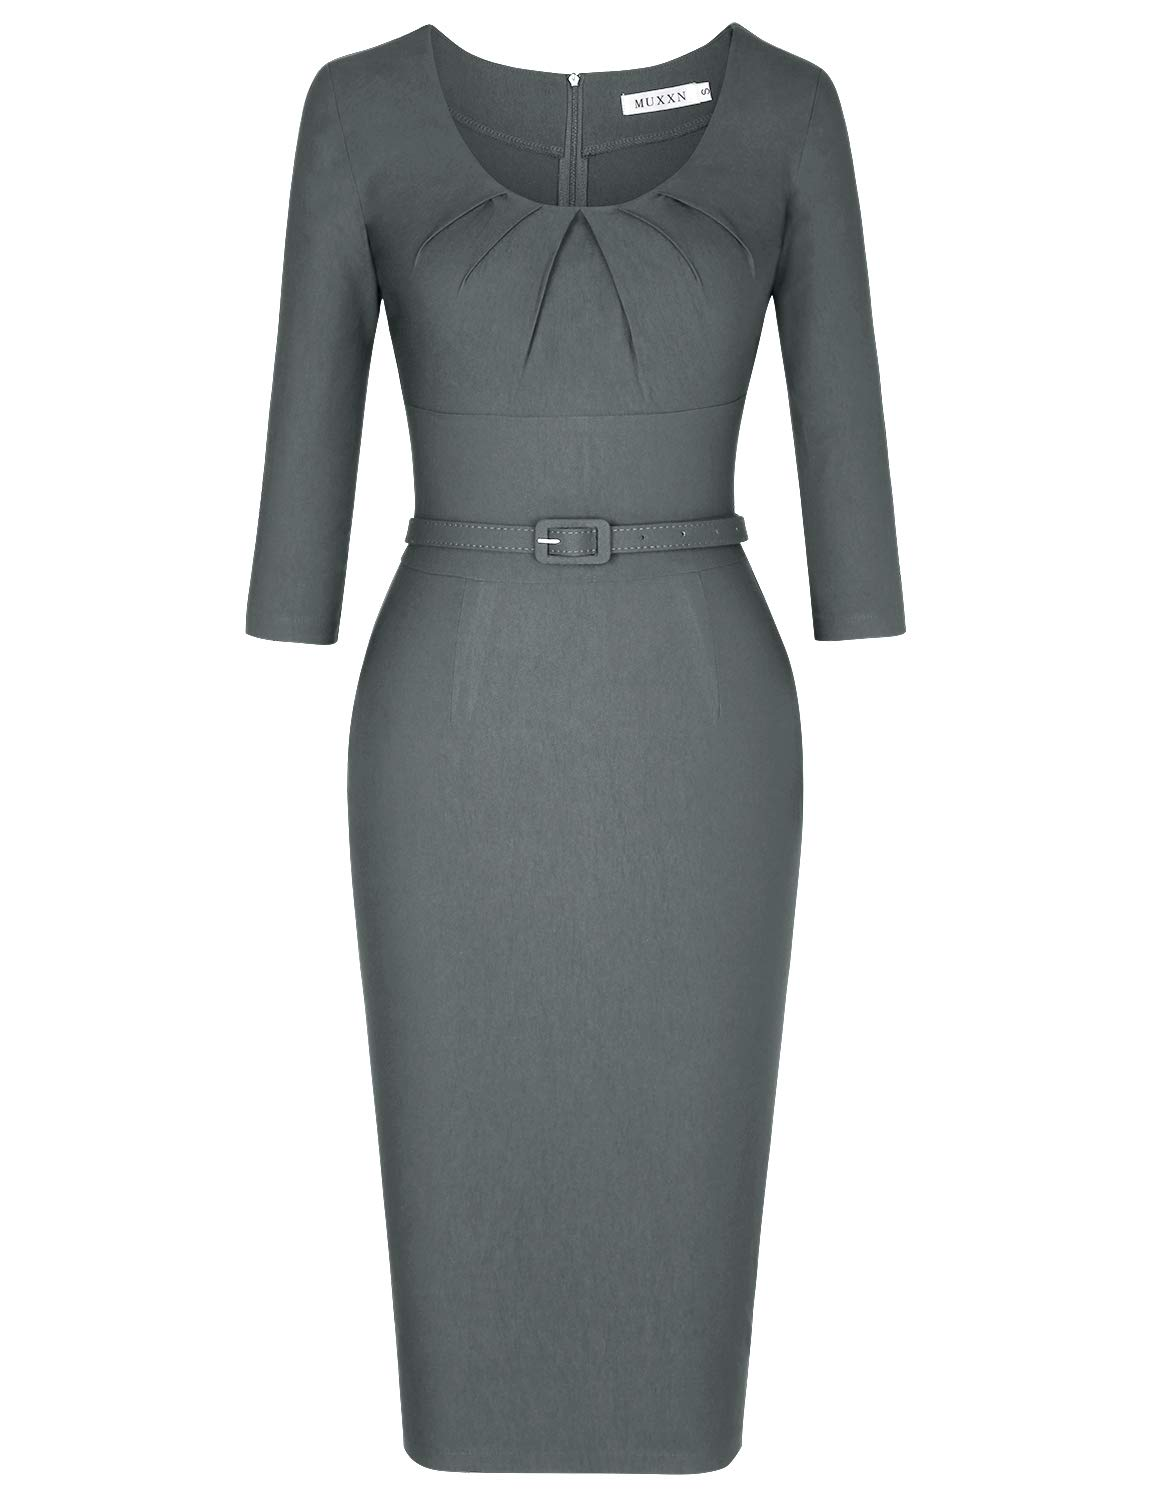 MUXXN Womens Audrey Hepburn 1940s Style Empire Waist Sheath Pencil Dress (Gray M) by MUXXN